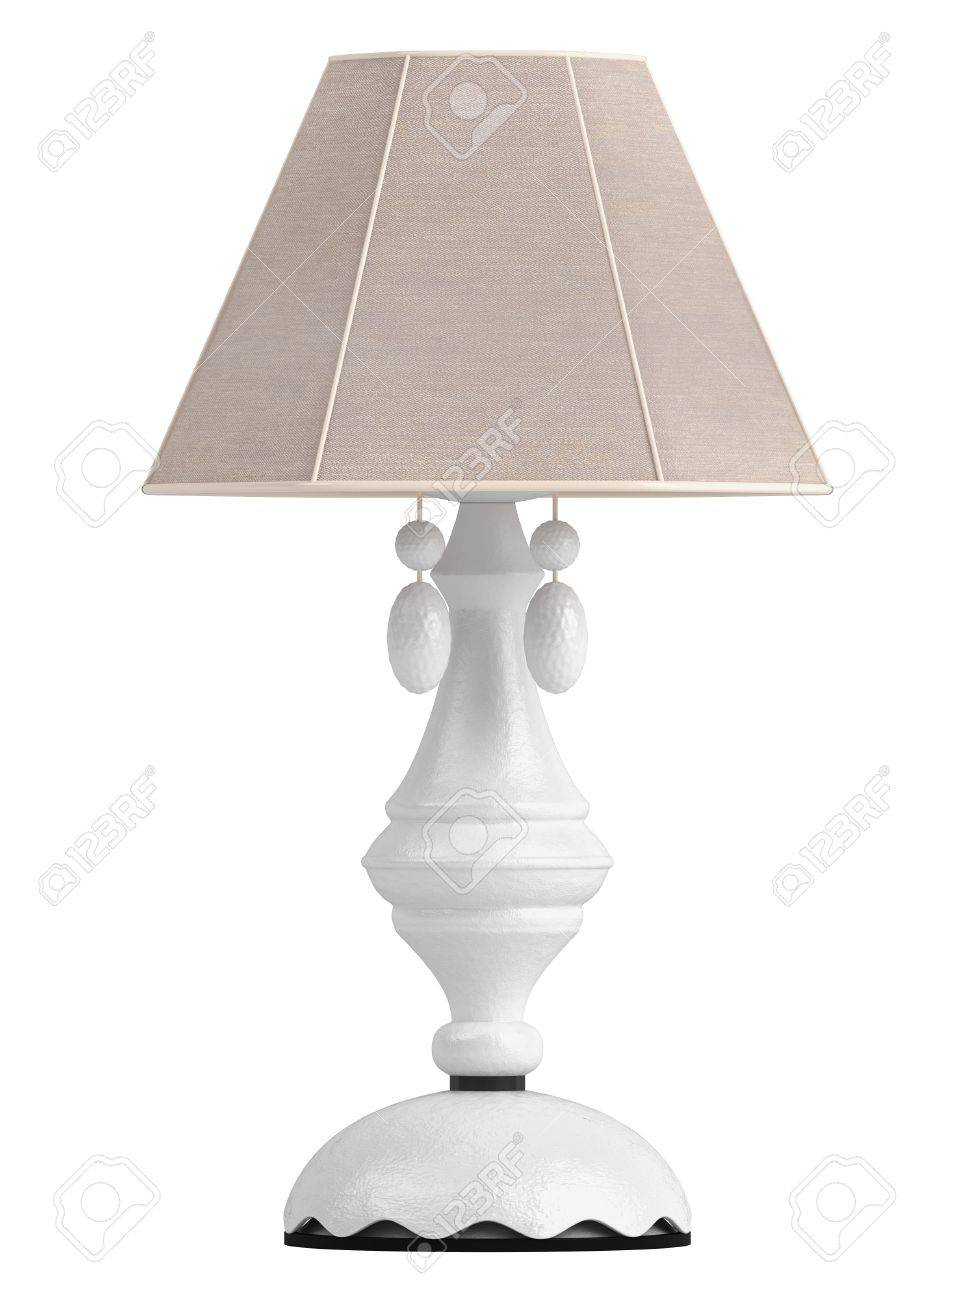 White lamp with hexagonal shade for the interior decoration of your living room isolated on white Stock Photo - 15518895